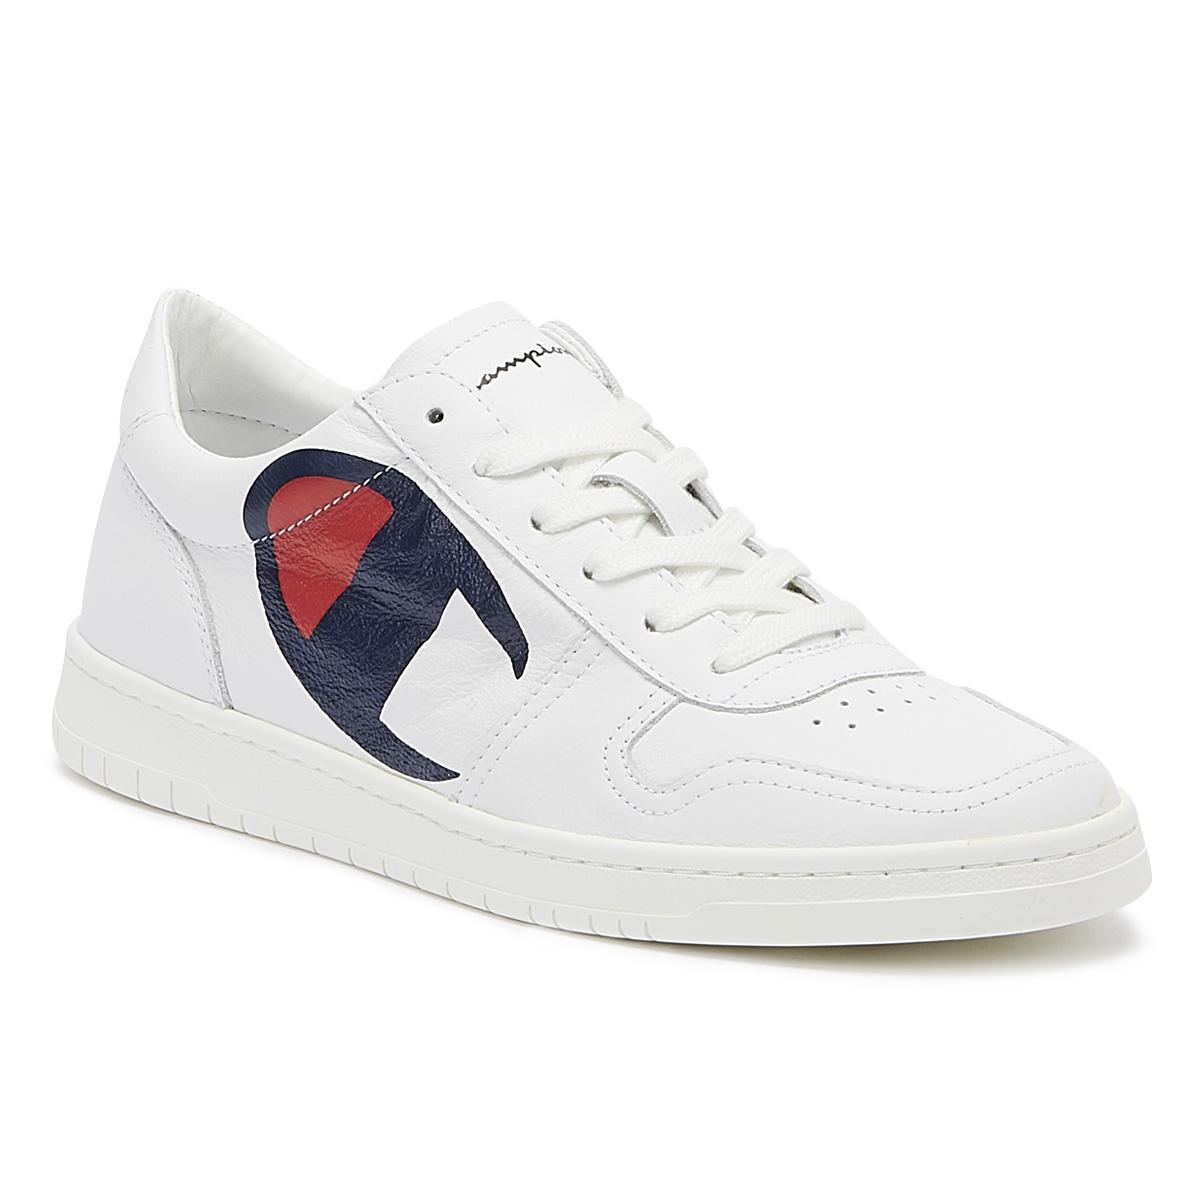 f04717912f854 Lyst - Champion 919 Roch Low Mens White Trainers in White for Men